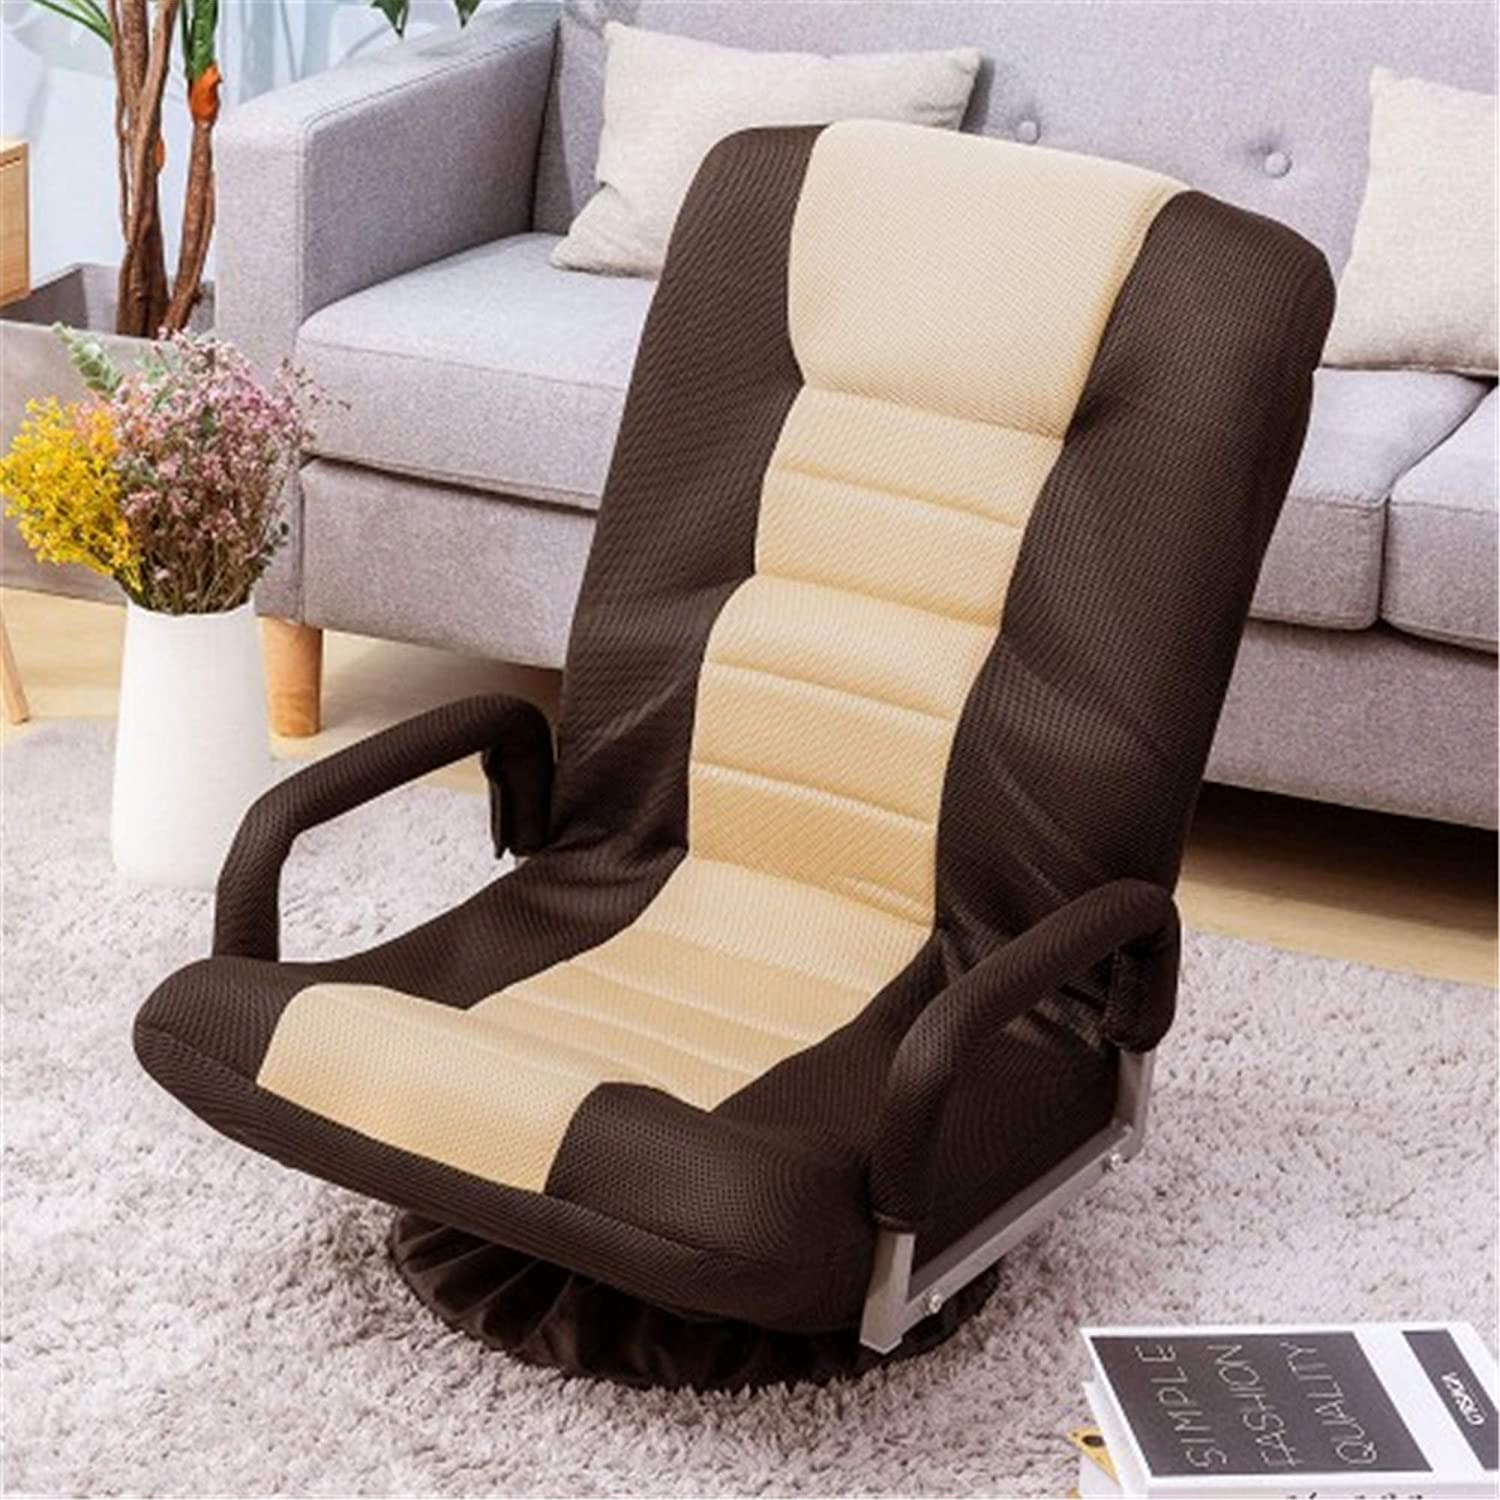 MERITLINE Swivel Video Rocker Gaming Chair Adjustable 7-Position Floor Chair Folding Sofa Lounger Brown Beige